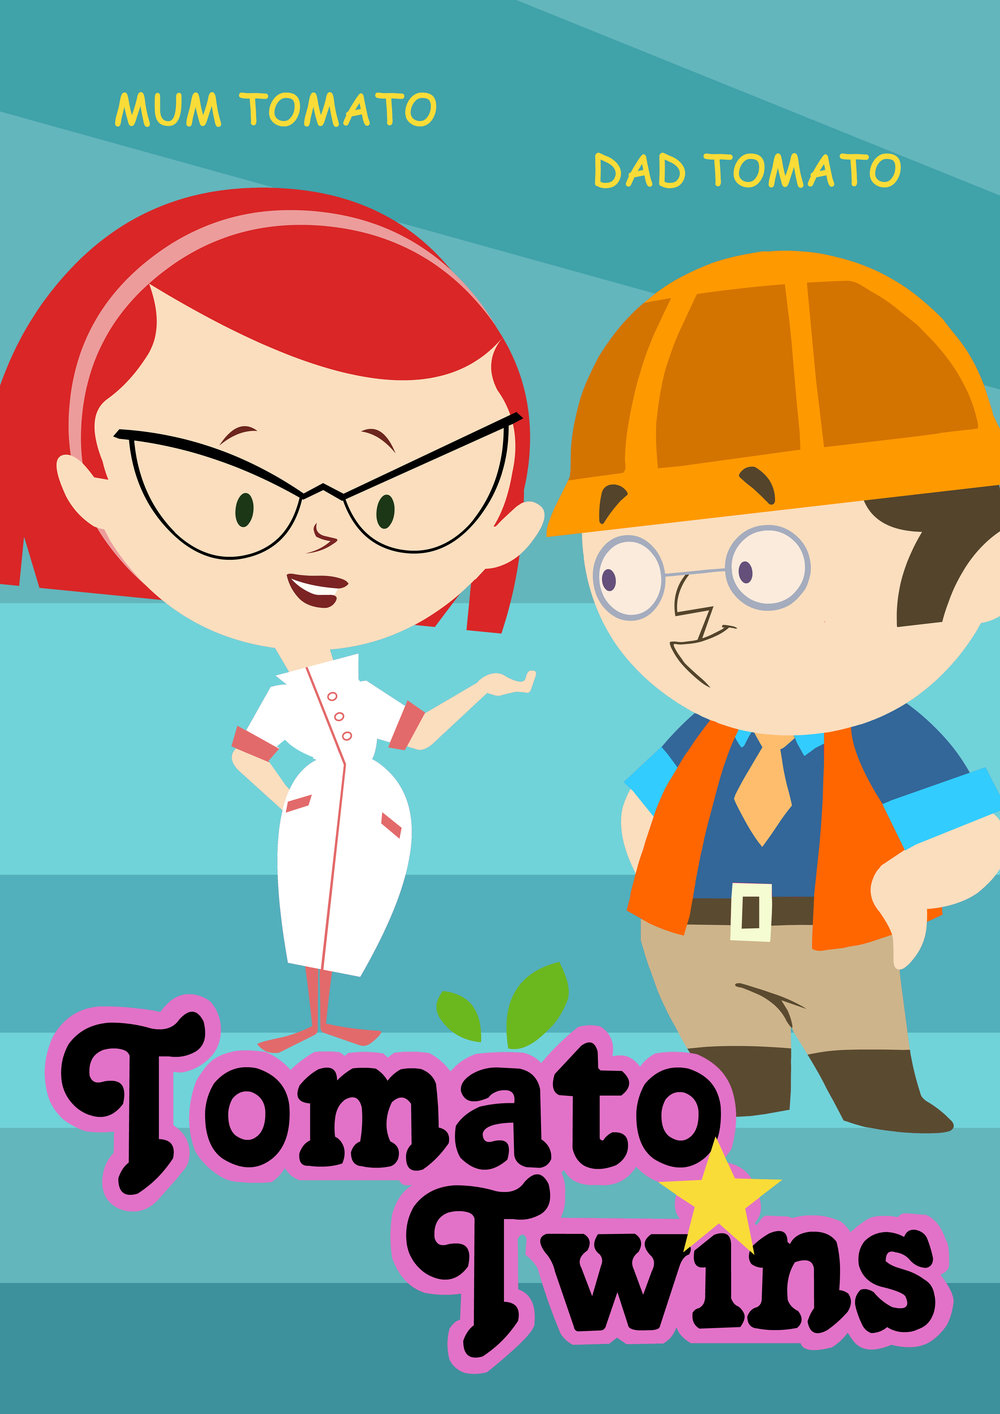 TomatotTwins_Poster_Parents.jpg